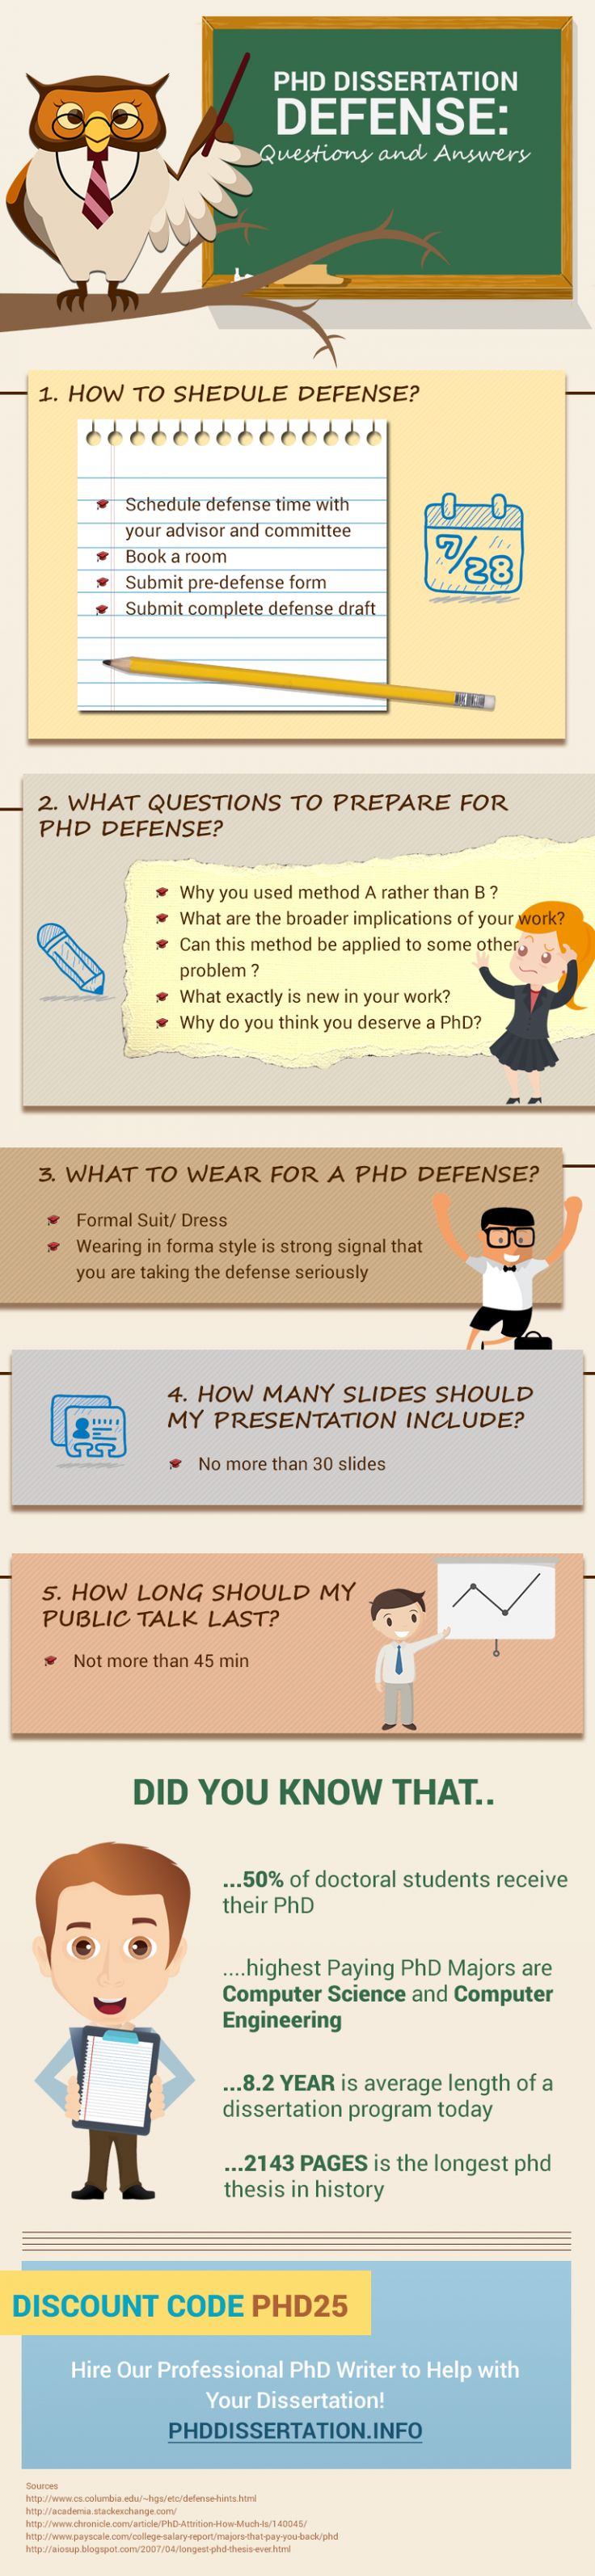 Find phd dissertation